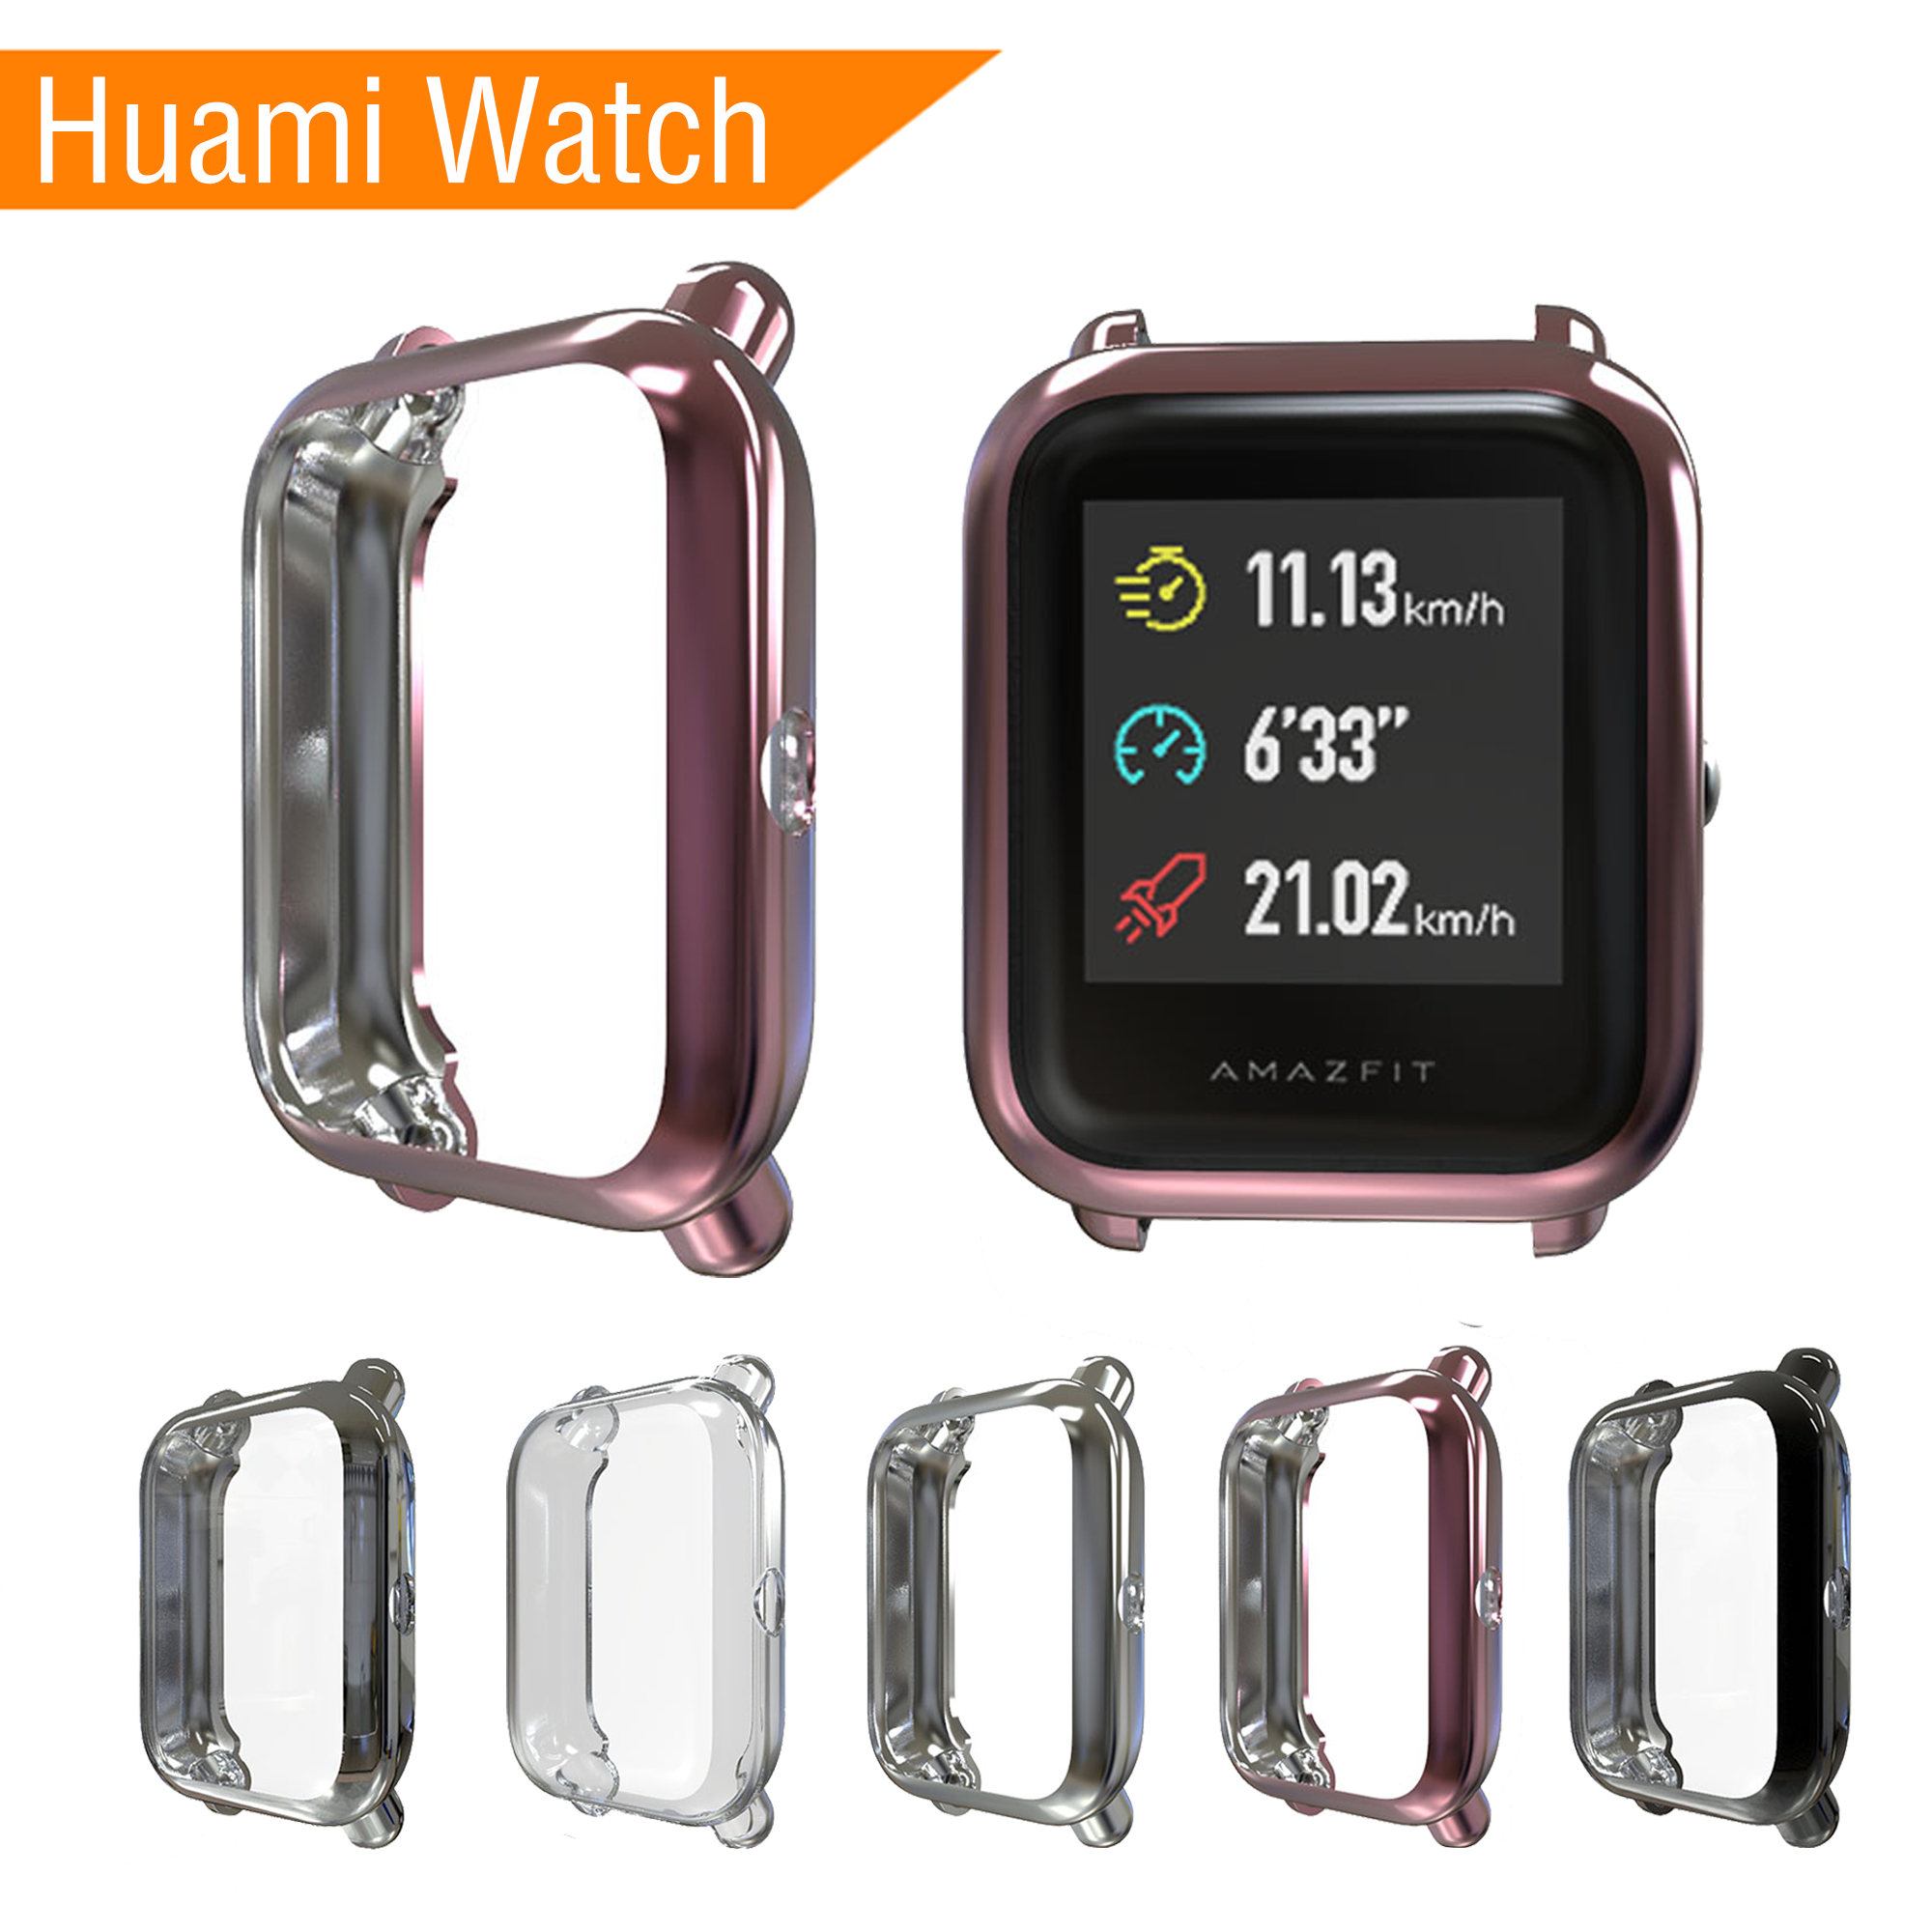 2019 Soft TPU Case For Huami Watch Cover Screen Protector Smart Accessories Sport Silicone